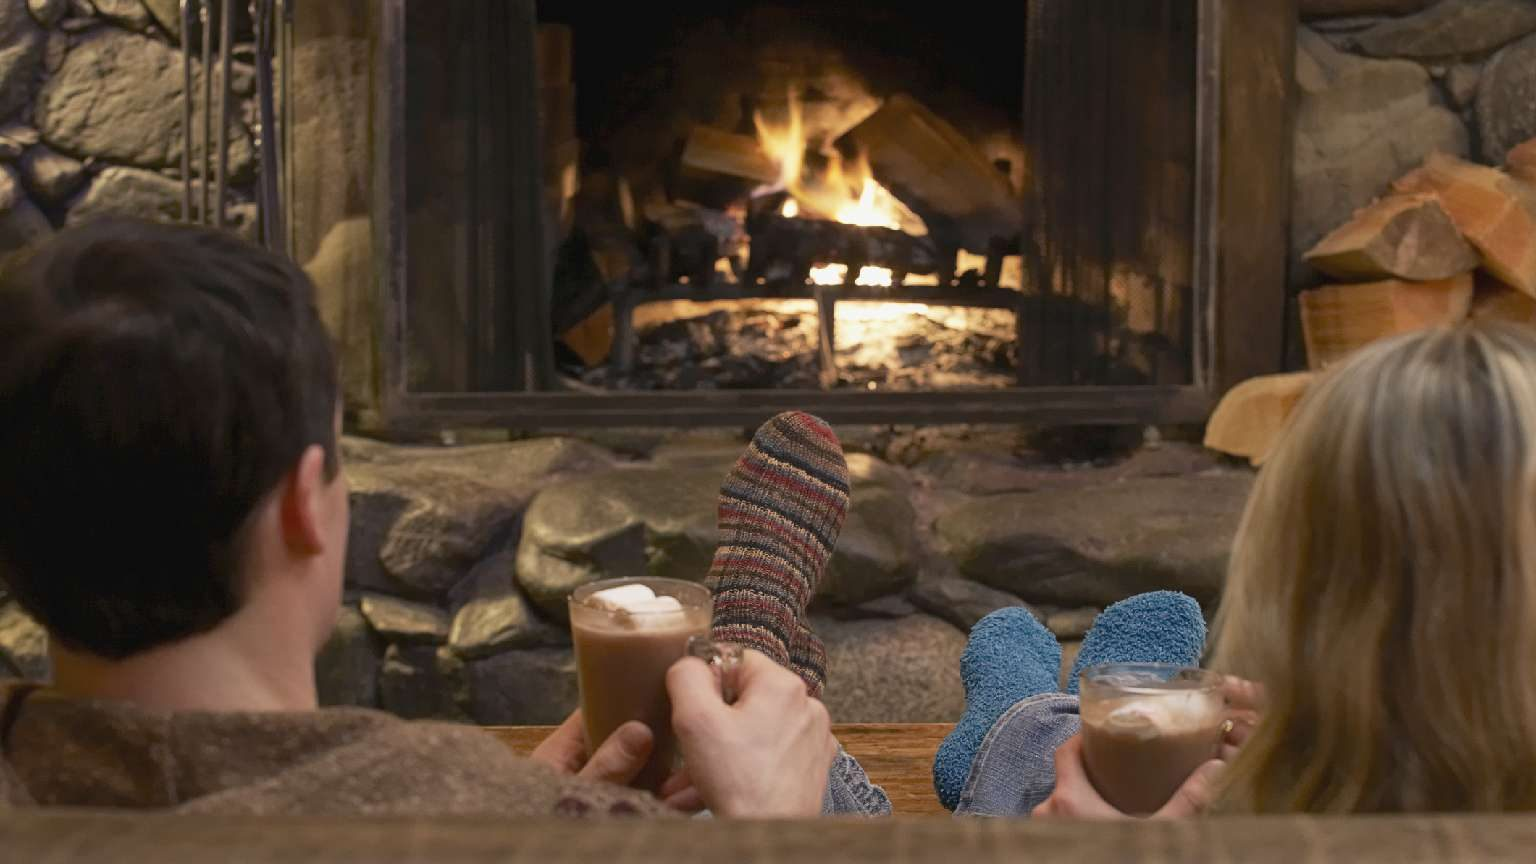 Couple relaxing in front of a roaring fire in a winter cabin.